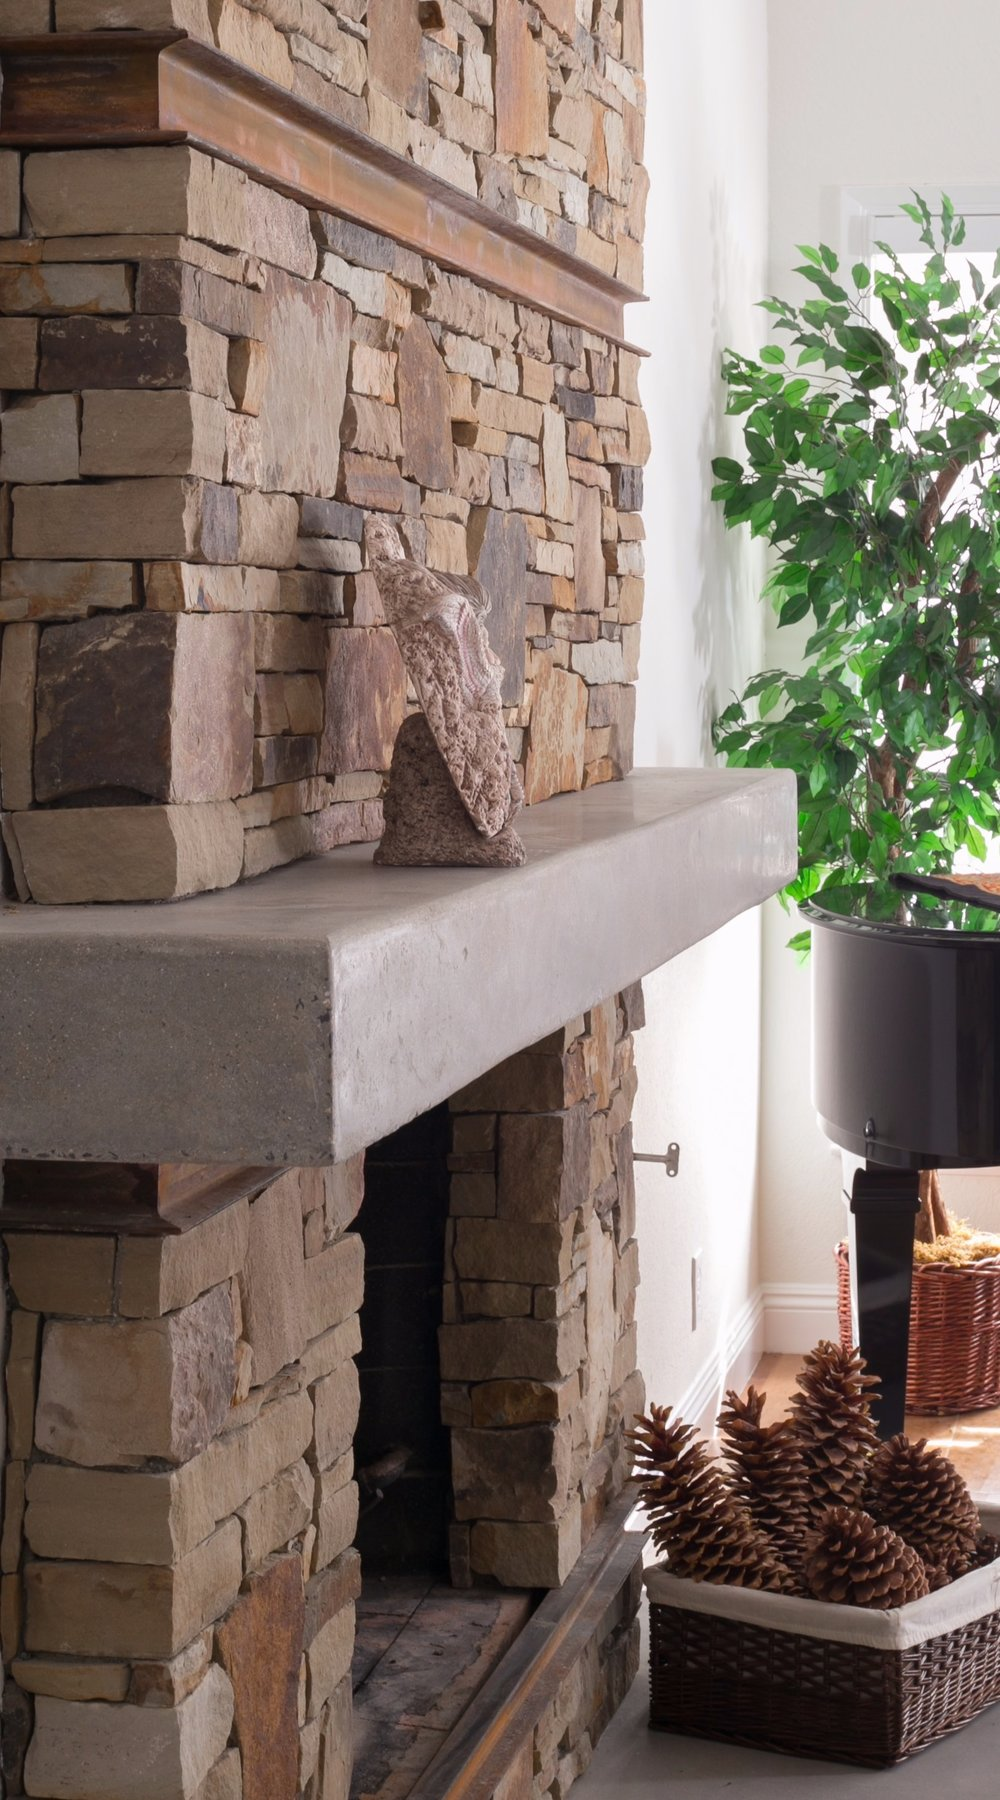 Transitional-Space-Fireplace-Stacked-Stone-Rusted-Chanels-Polished-Concrete-Mantel.jpg